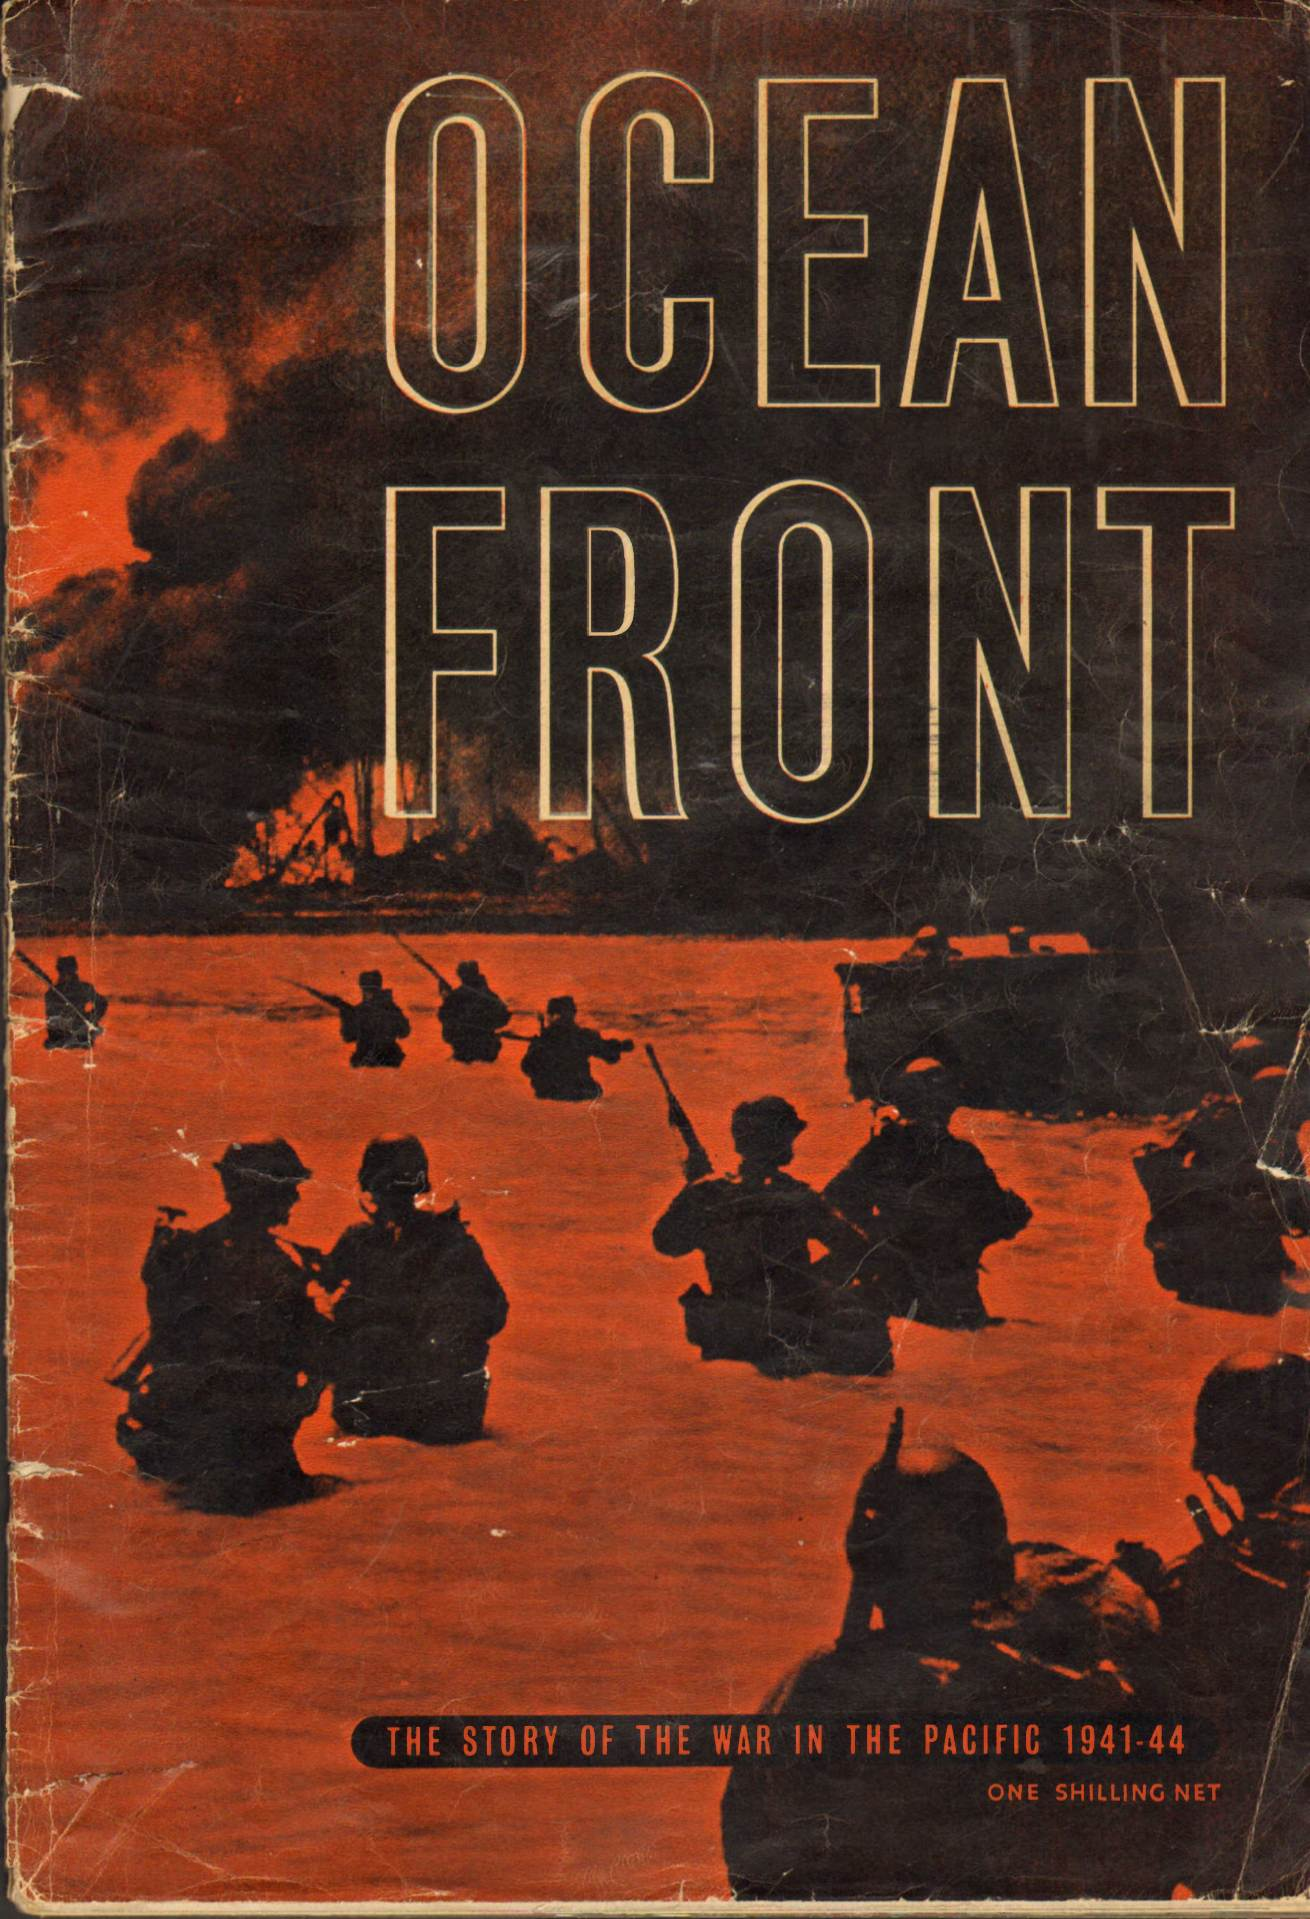 View individual pages of 'Ocean Front, The Story of the War in the Pacific 1941-44'